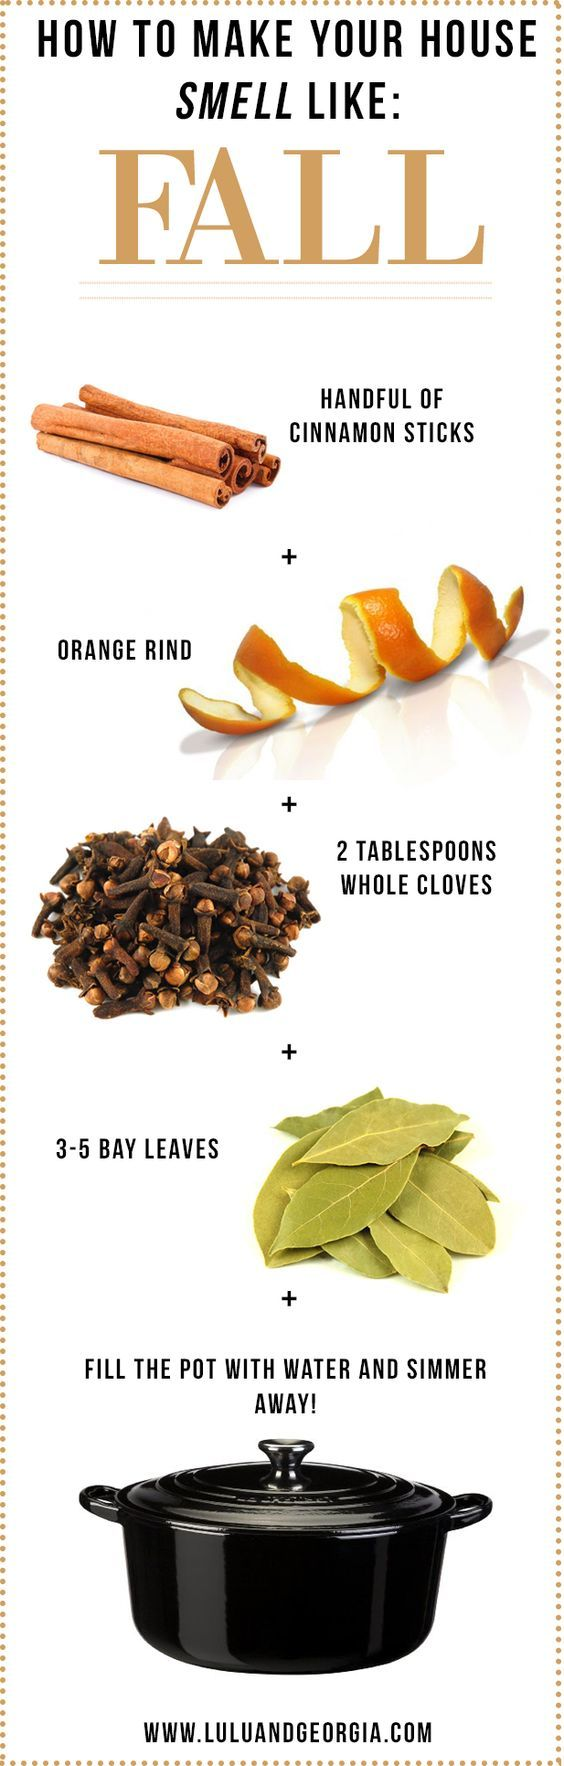 How To Make Your House Smell Like FALL! ~ Just add cinnamon sticks, orange rind, whole cloves, and bay leaves, cover with water, and simmer on the stove for a natural autumn scent.